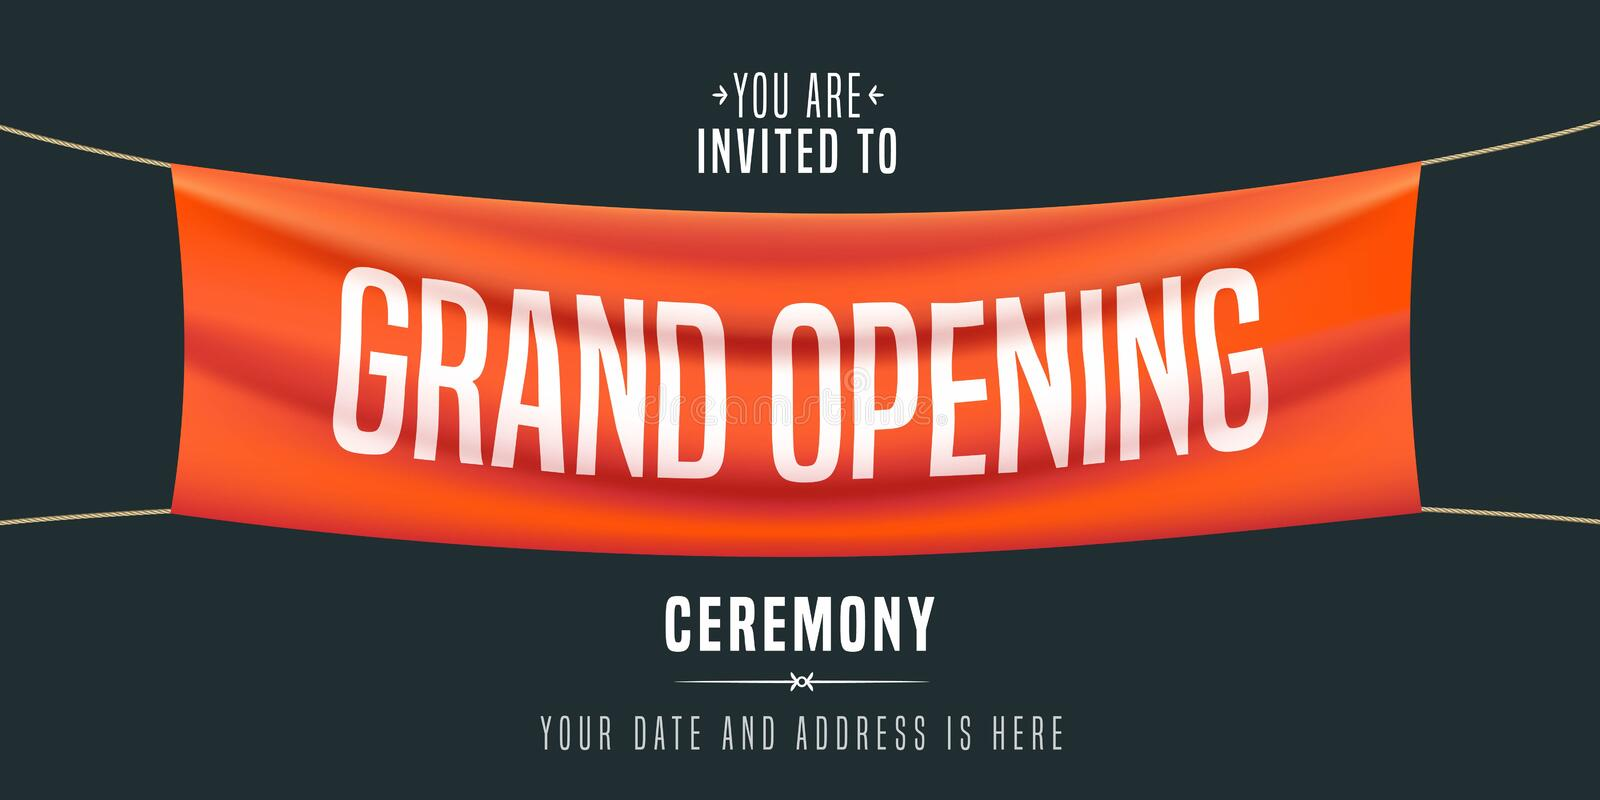 Grand opening vector illustration, background. Invitation card. Template banner, invite for red ribbon cutting ceremony vector illustration